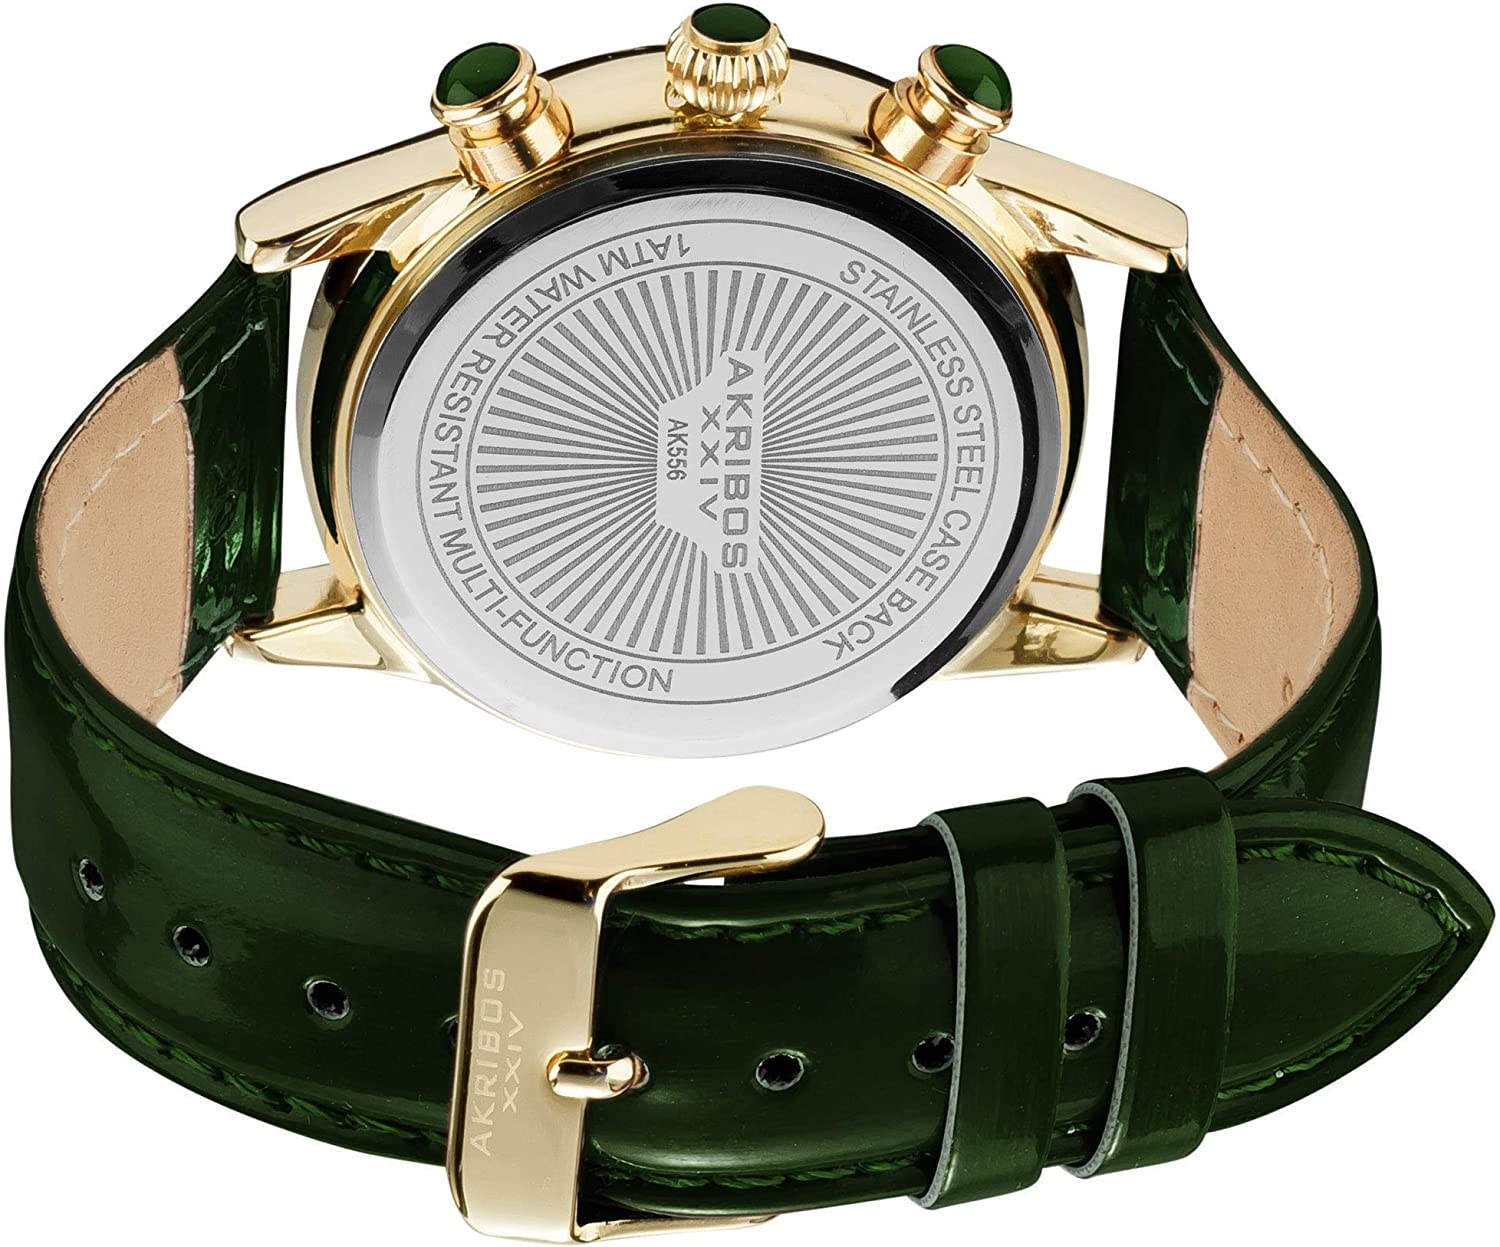 Akribos XXIV Women's AK556 Dazzling Swiss Multifunction Strap Watch Green